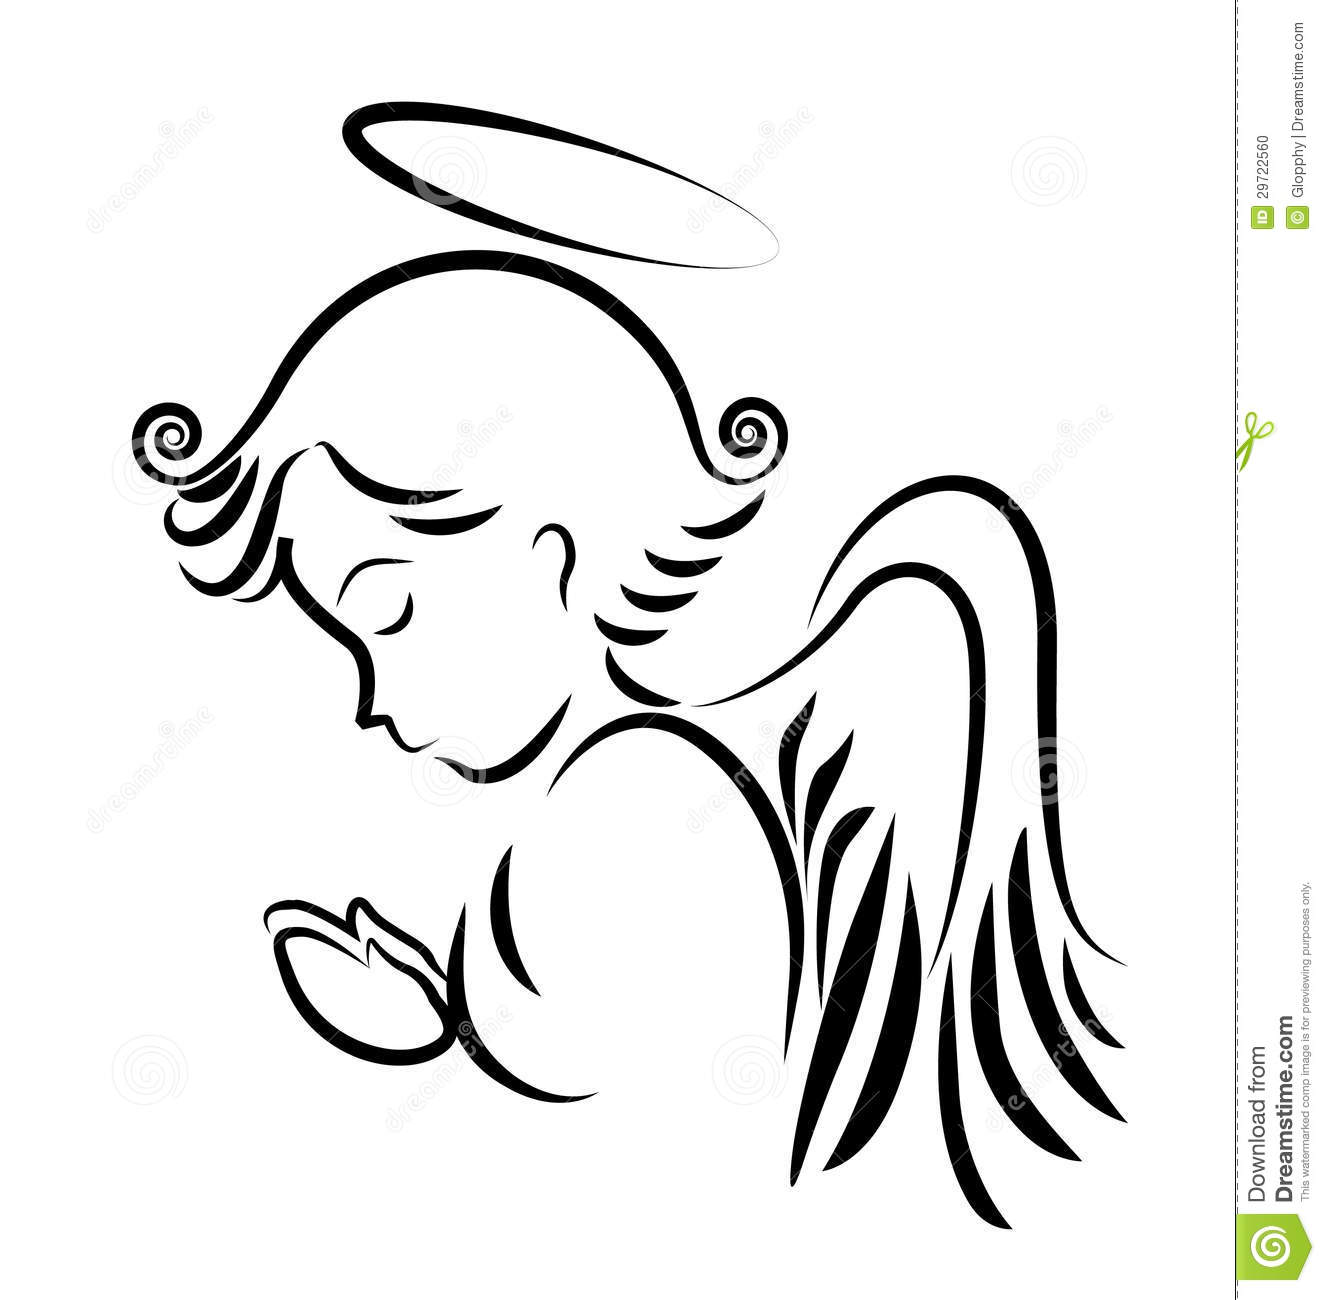 Praying Angel Clip Art.